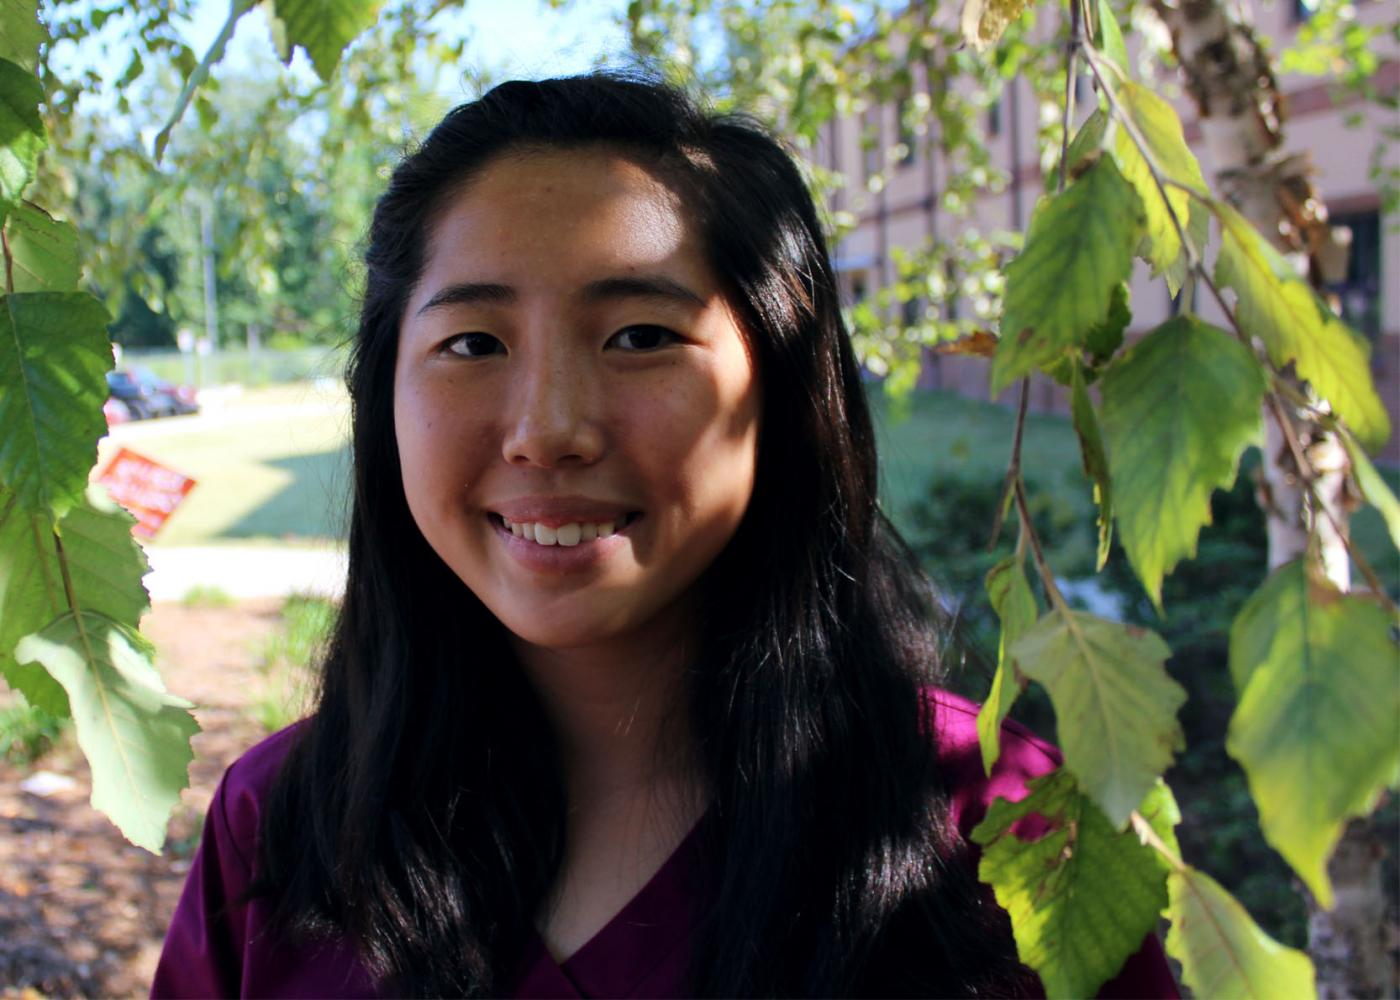 Sophomore Megan Hong speaks about how she balances soccer, iGem, viola, and homework.